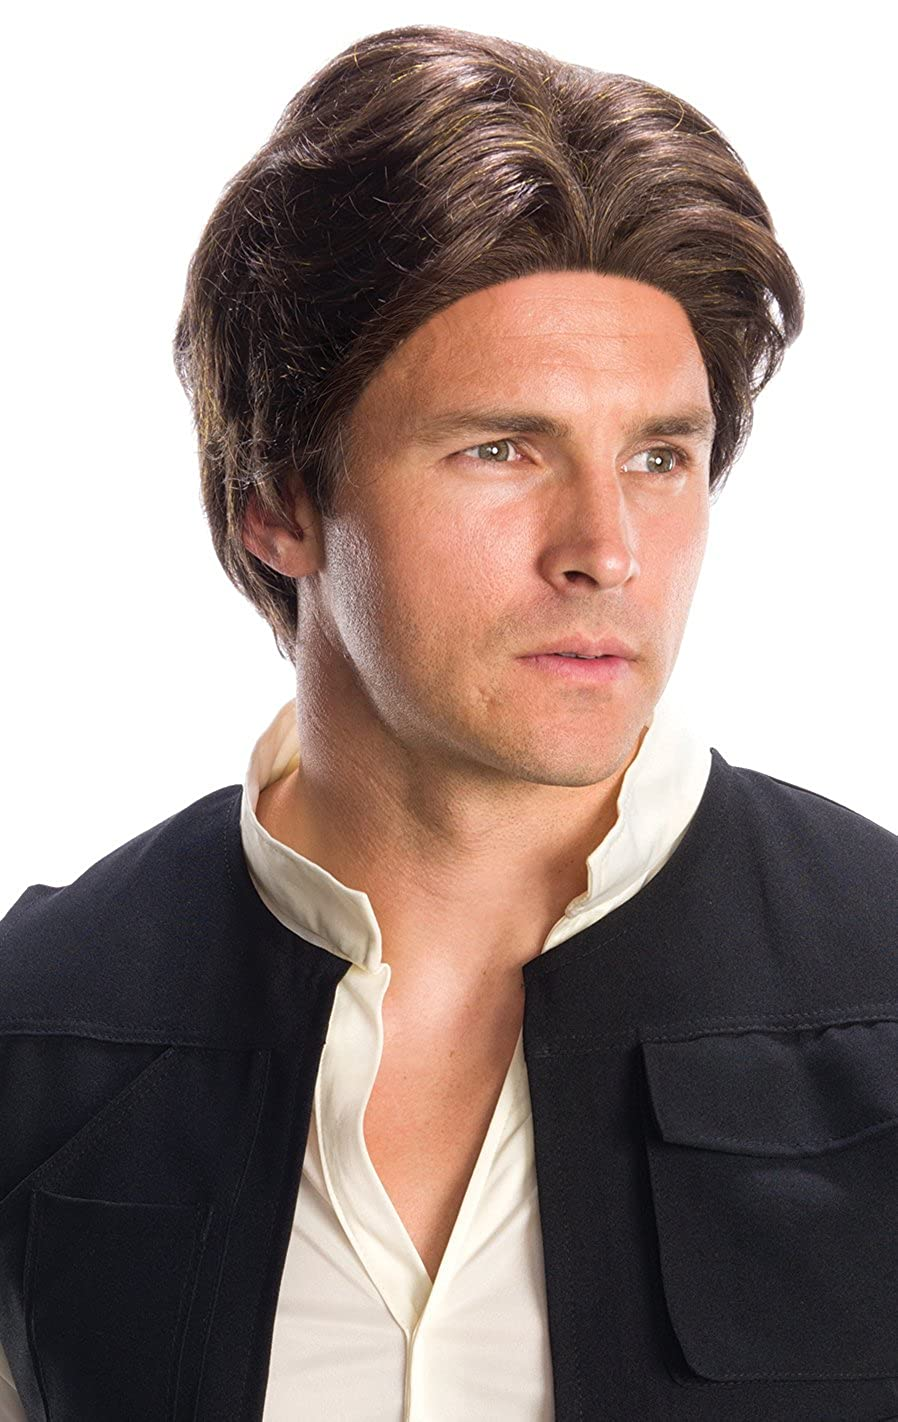 Rubie's Adult Star Wars Han Solo Wig As/Shown One Size Rubies Costumes - Apparel 33598